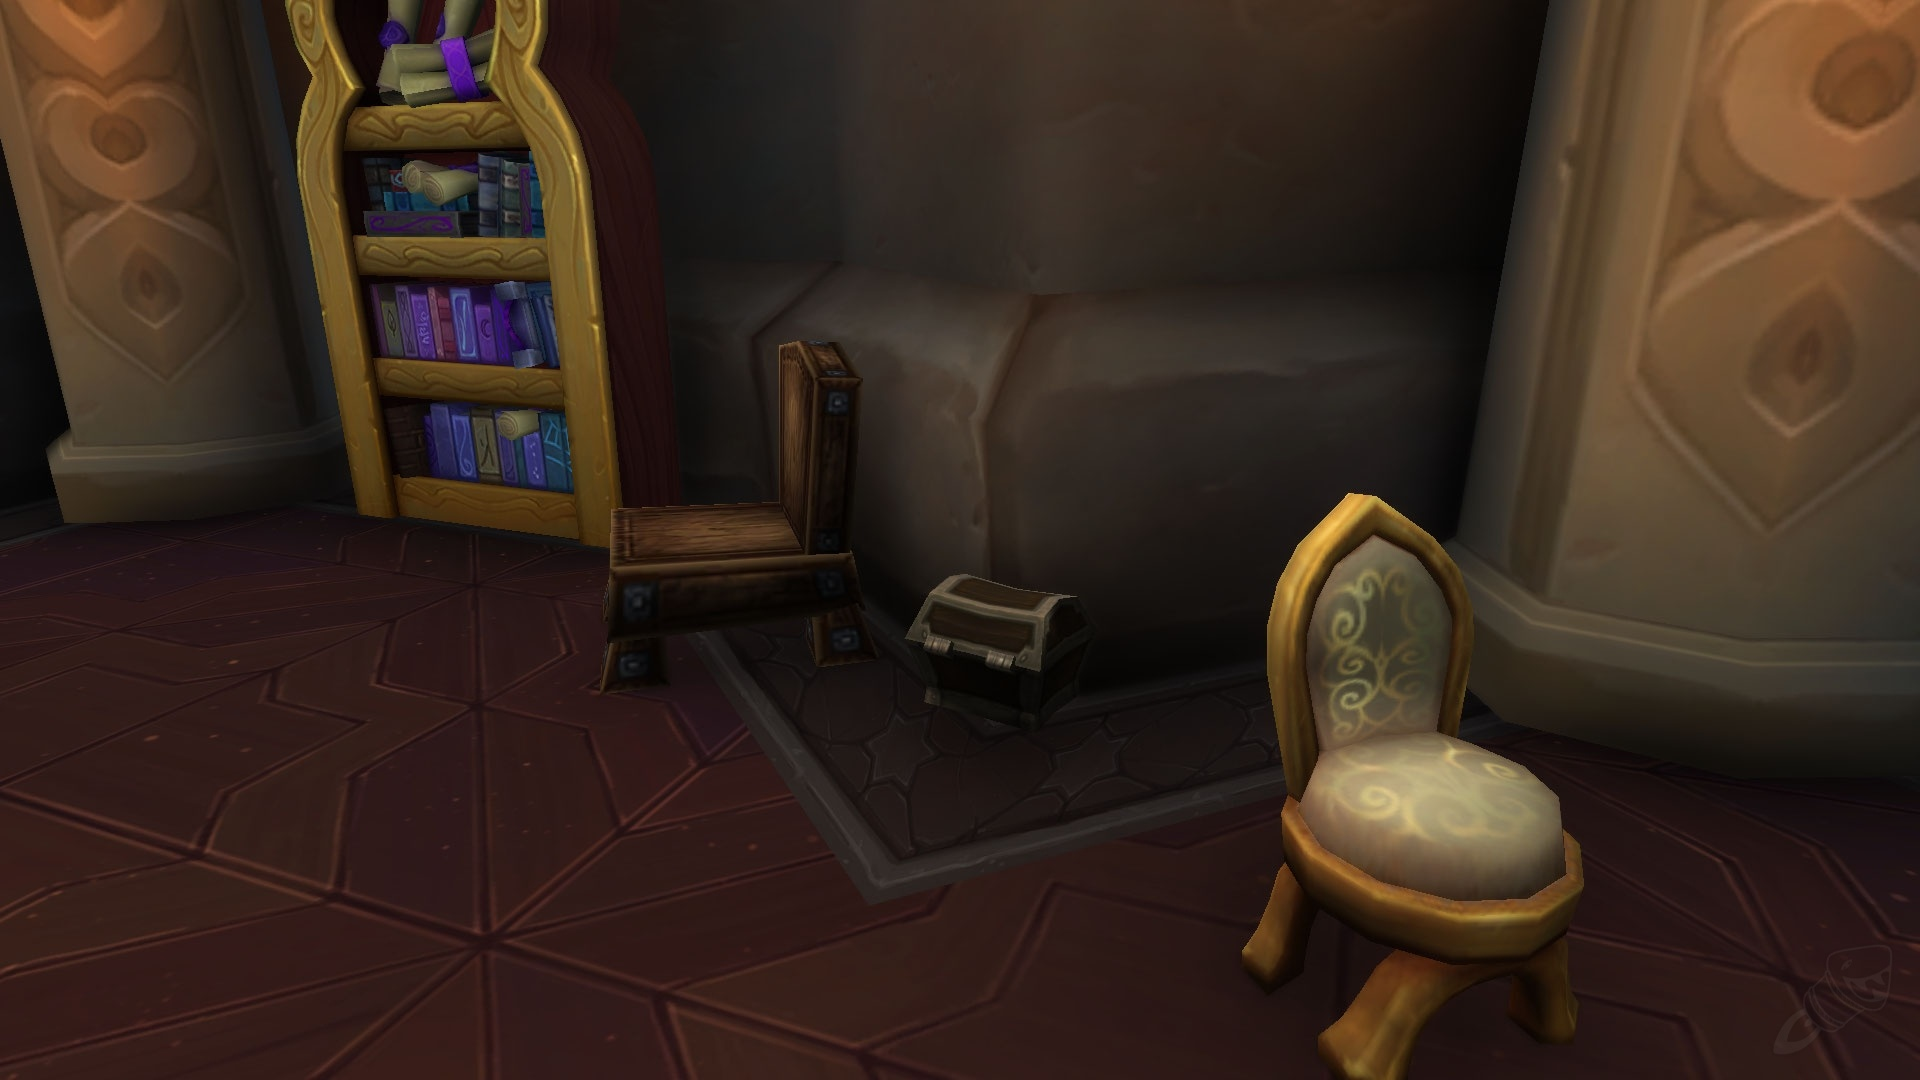 fishing chair wowhead nice office shoe shine kit toy obtainable in patch 7 2 5 news the inspiration for this came from wrath dalaran if you sit next to sheddle glossgleam he will also your shoes and give